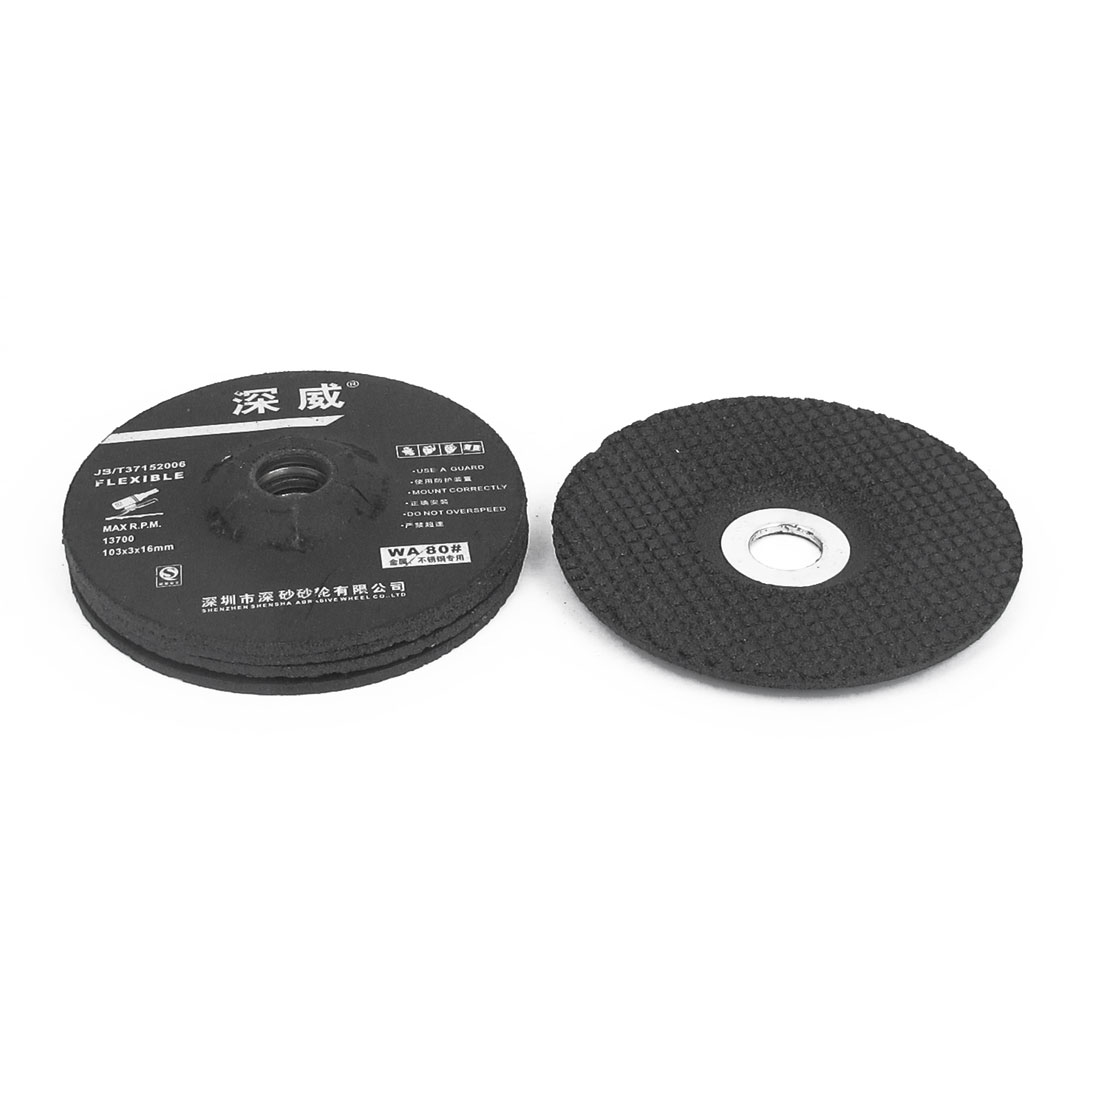 "103mm 4"" Outer Dia 100 Grit Polishing Disc Abrasives Cutting Wheel 5pcs"